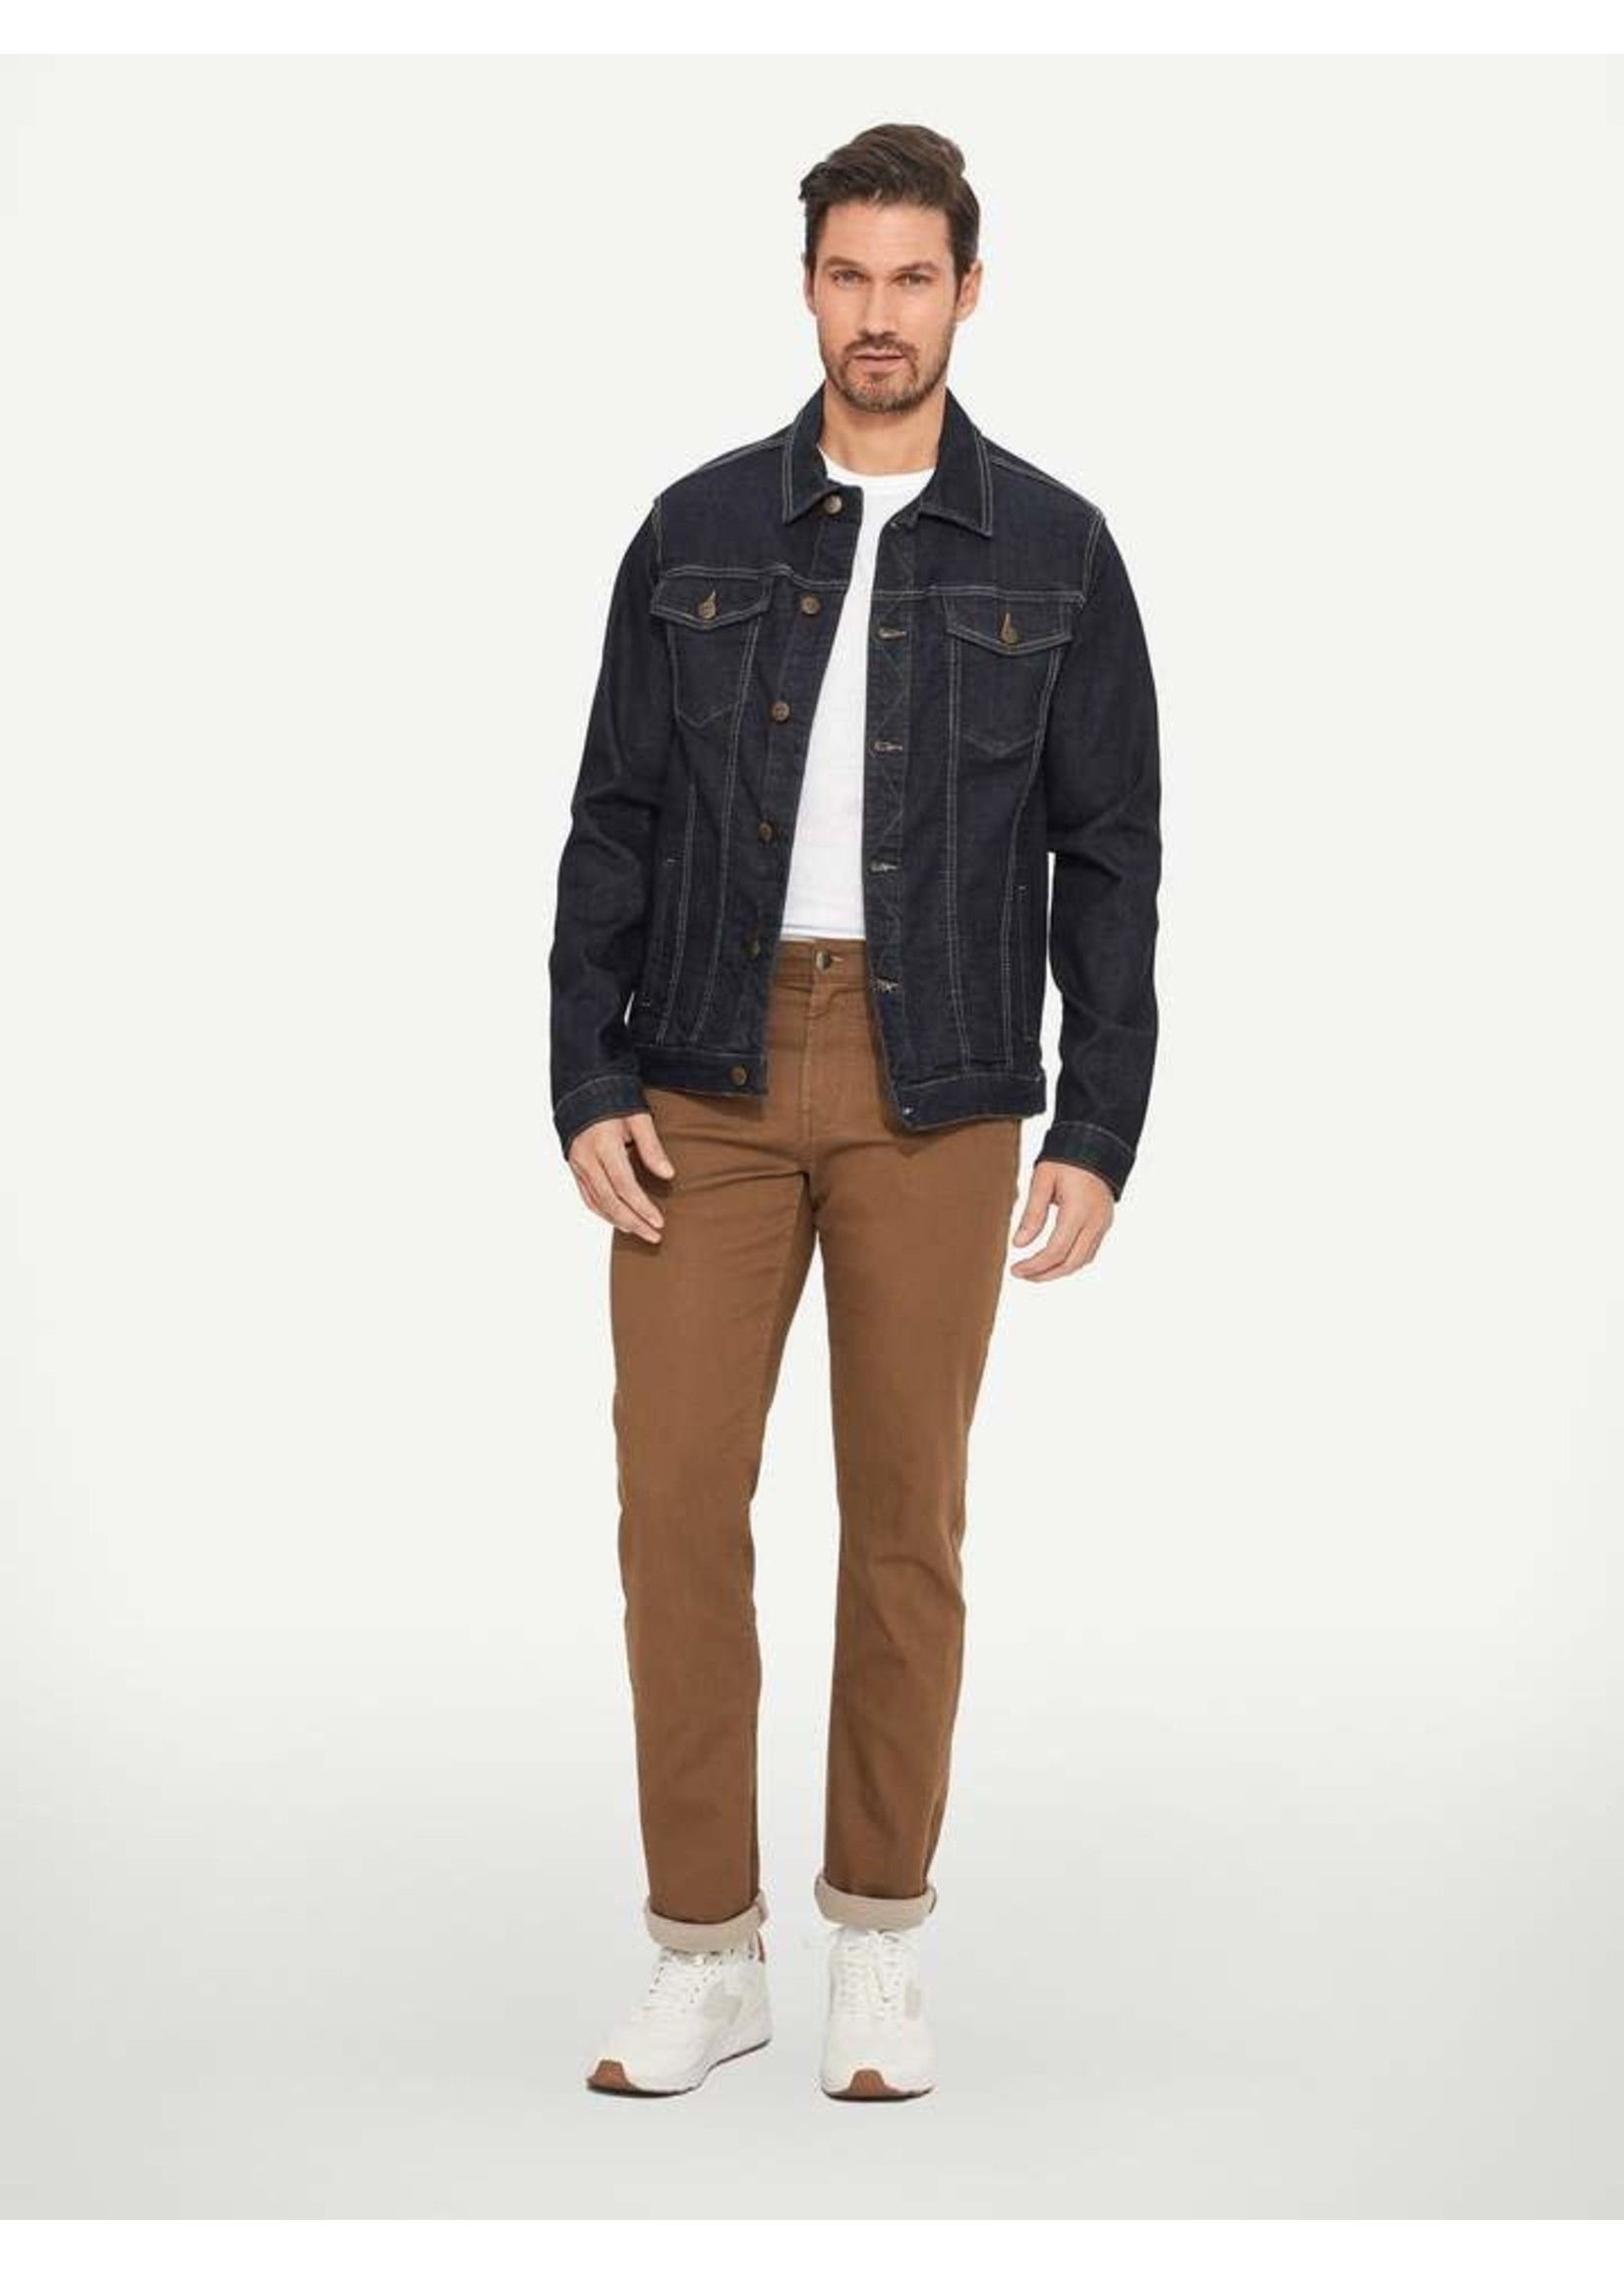 """Lois Jeans Canada The """"Brad Slim 6240-66"""" by Lois Jeans"""